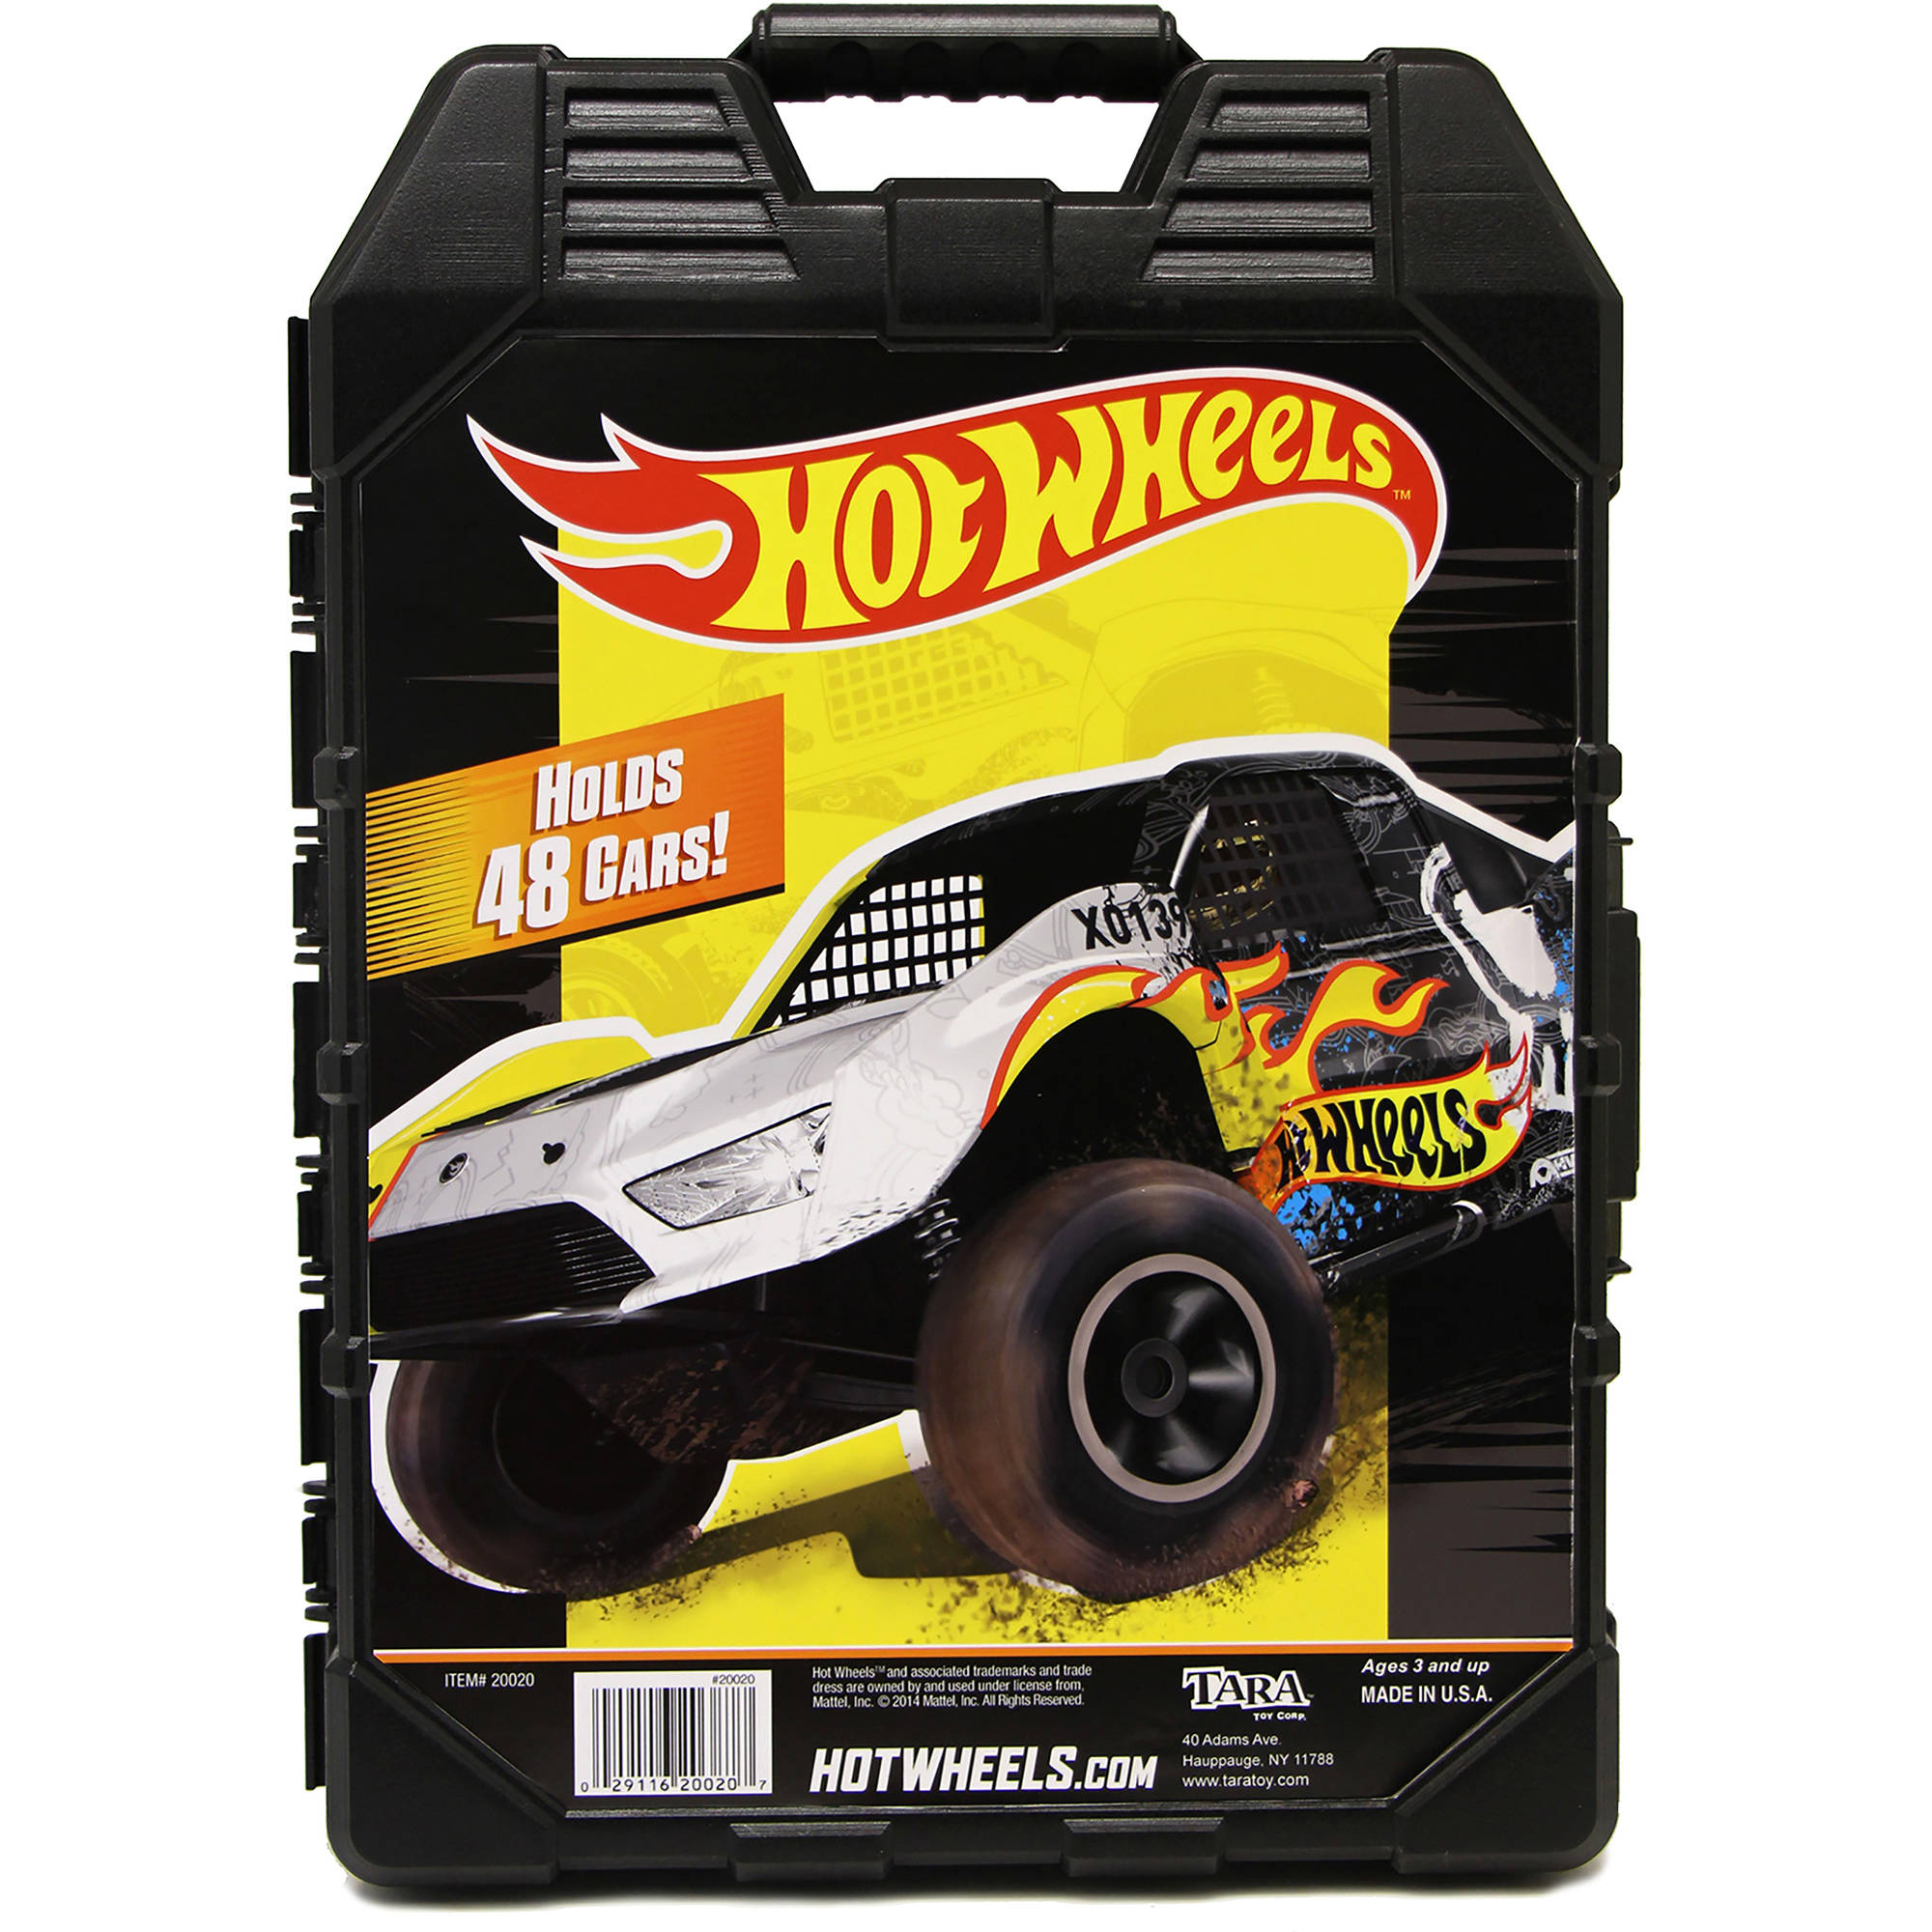 Hot Wheels 48- Car storage Case With Easy Grip Carrying Case by Tara Toy Corporation